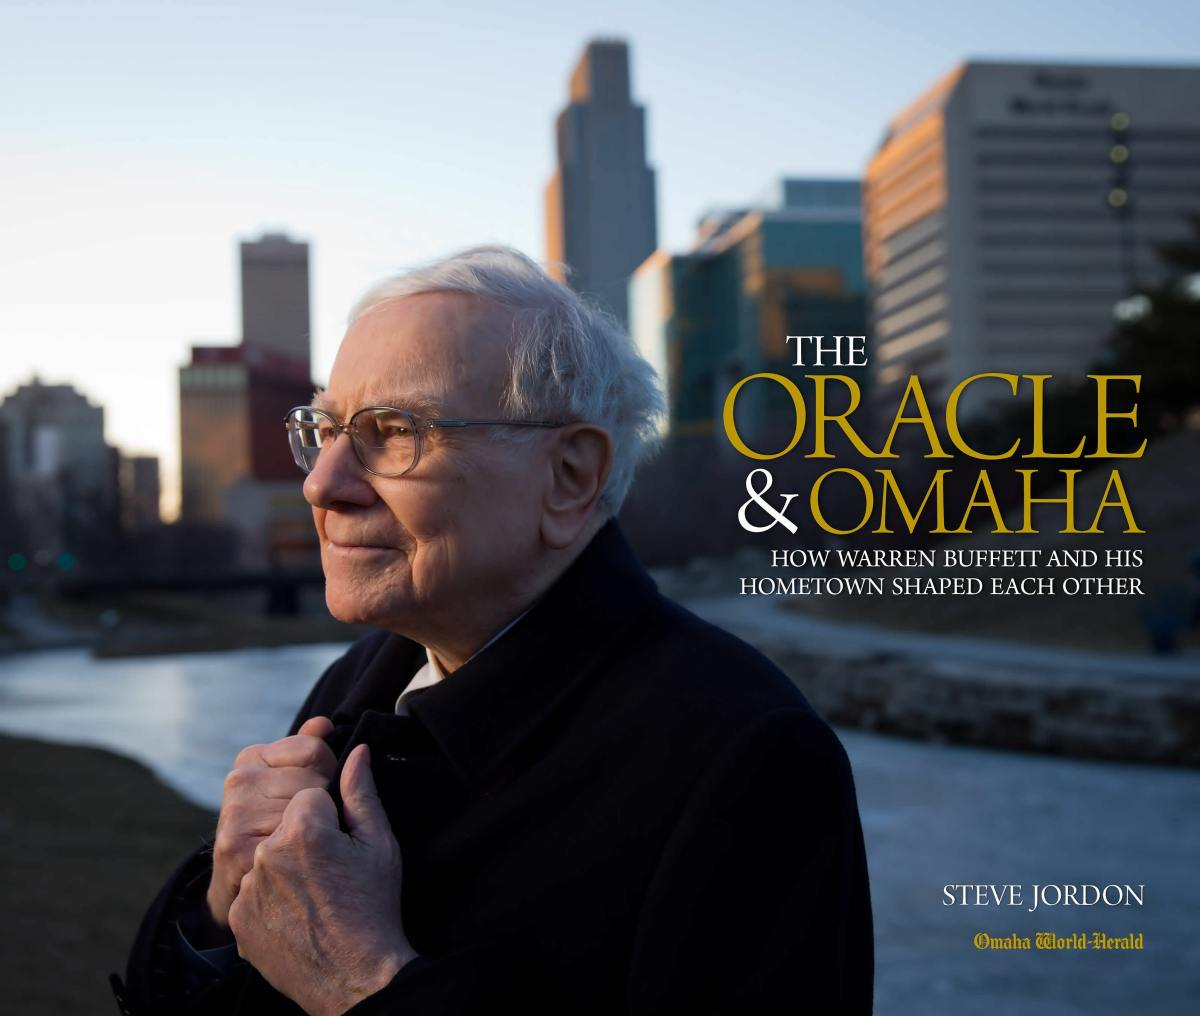 Warren Buffett is known as Oracle of Omaha